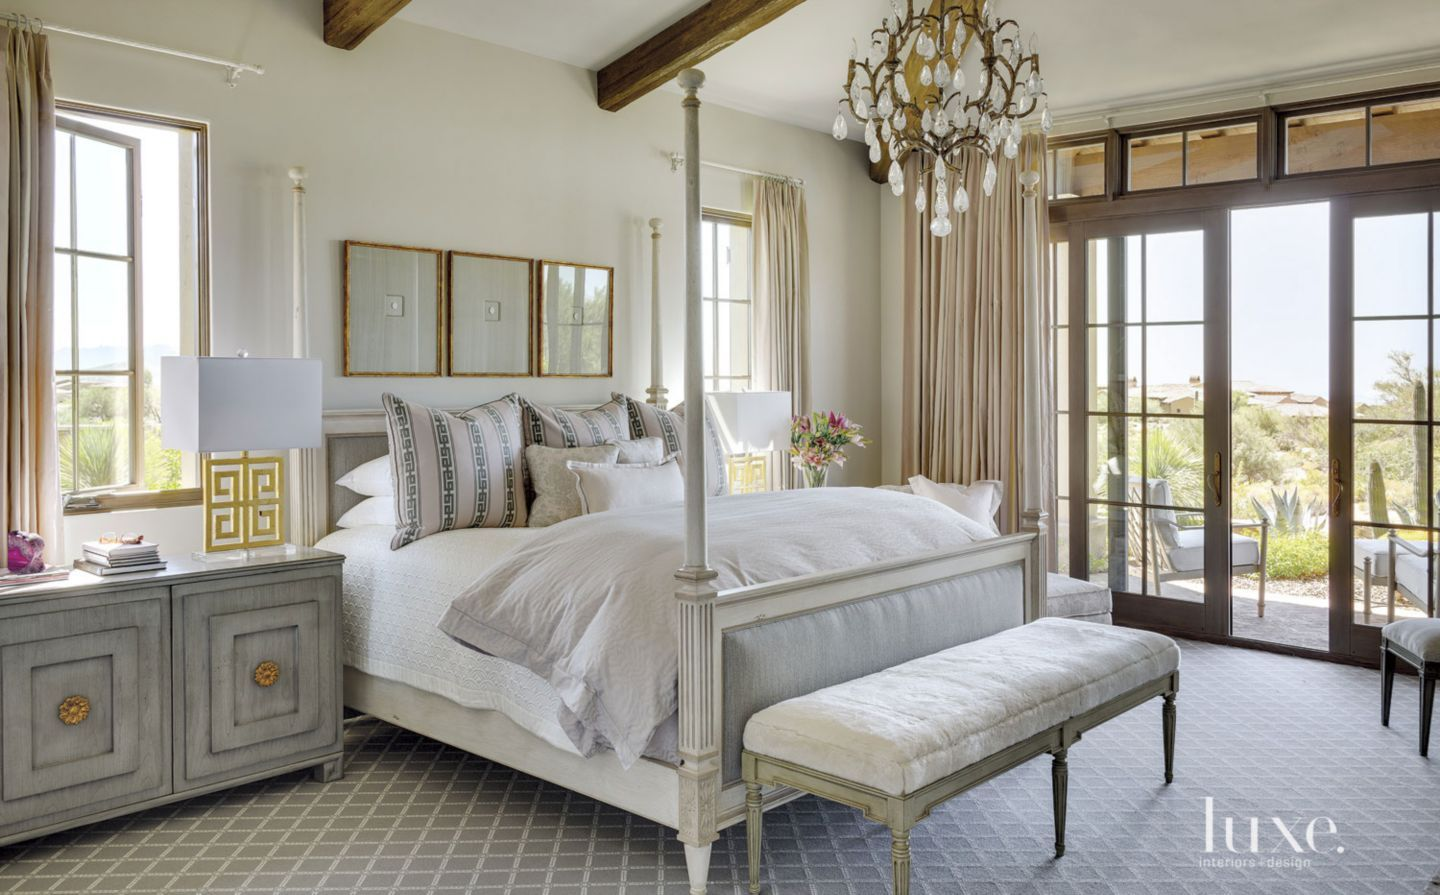 Best 24 Of Our Top Pinned Bedrooms Luxeworthy Design 400 x 300